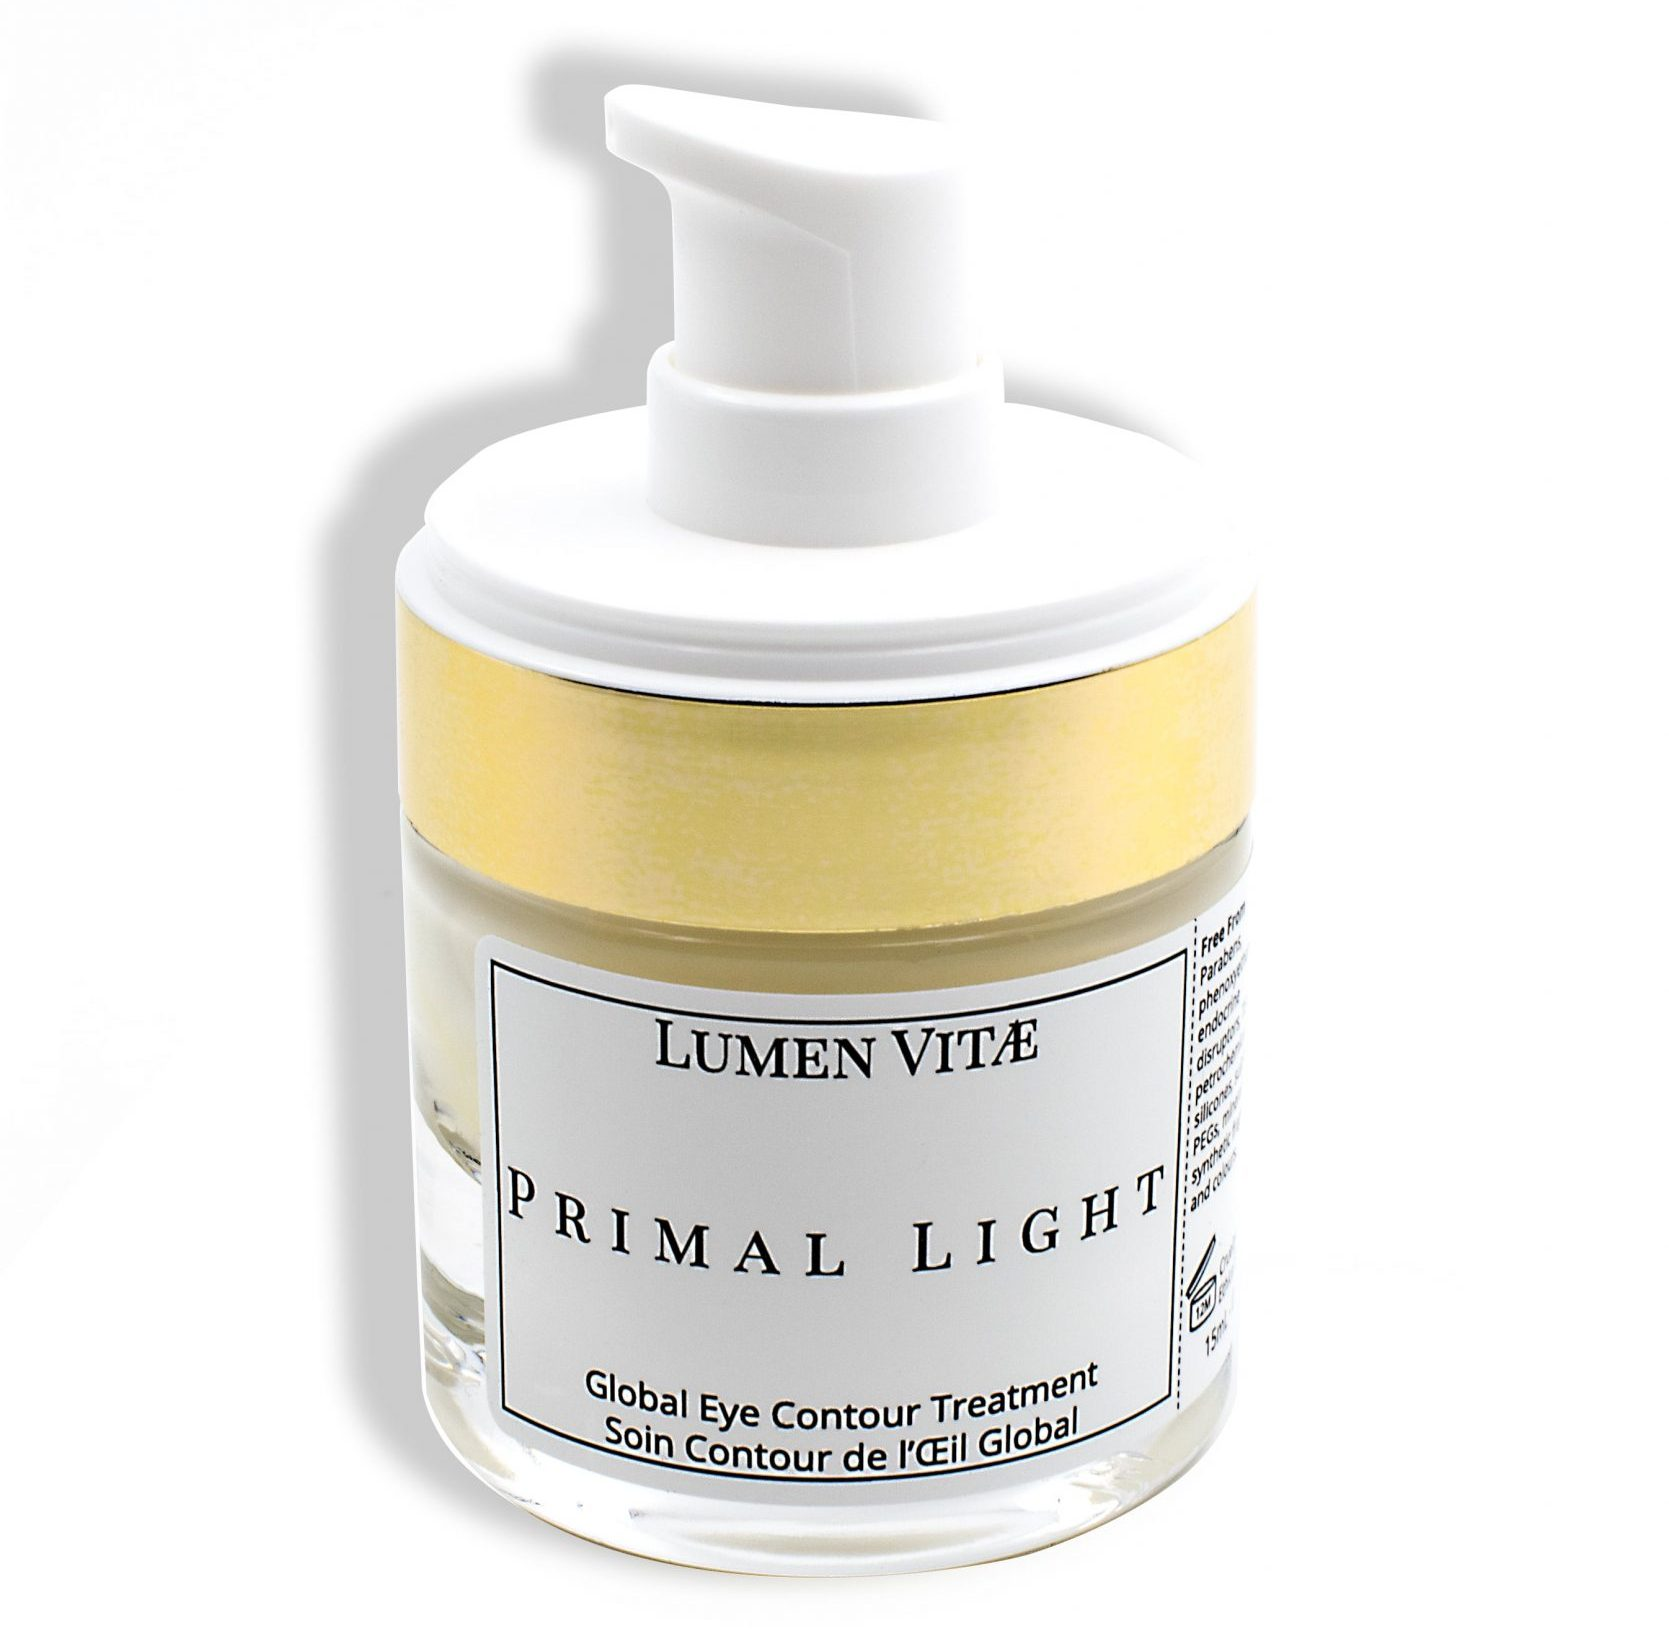 Primal Light global eye contour treatment